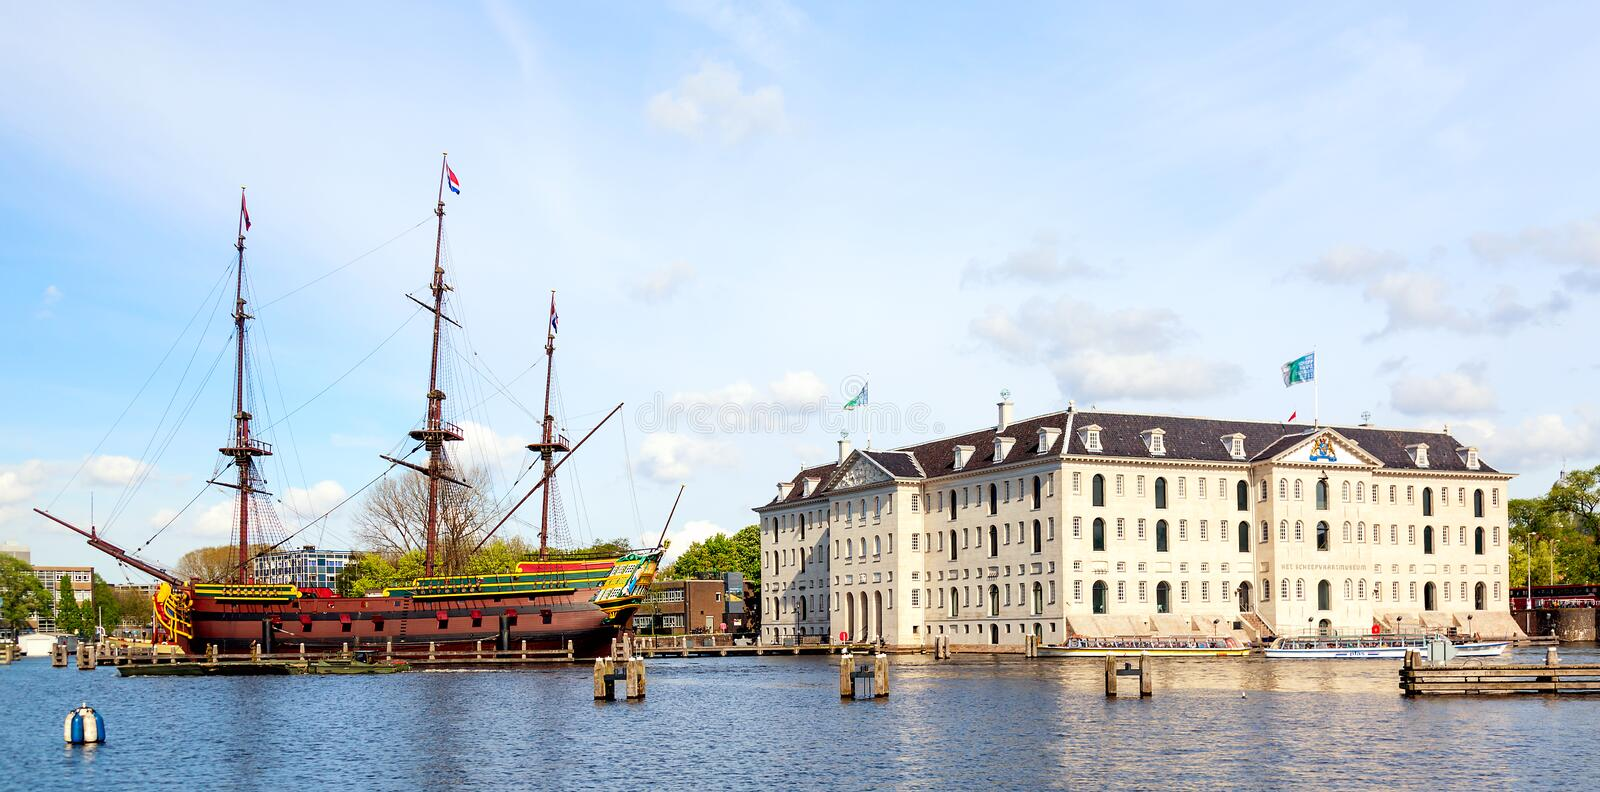 Amsterdam, The Netherlands - May, 2018: National Maritime Museum Scheepvaartmuseum in Amsterdam with old replica ship stock image